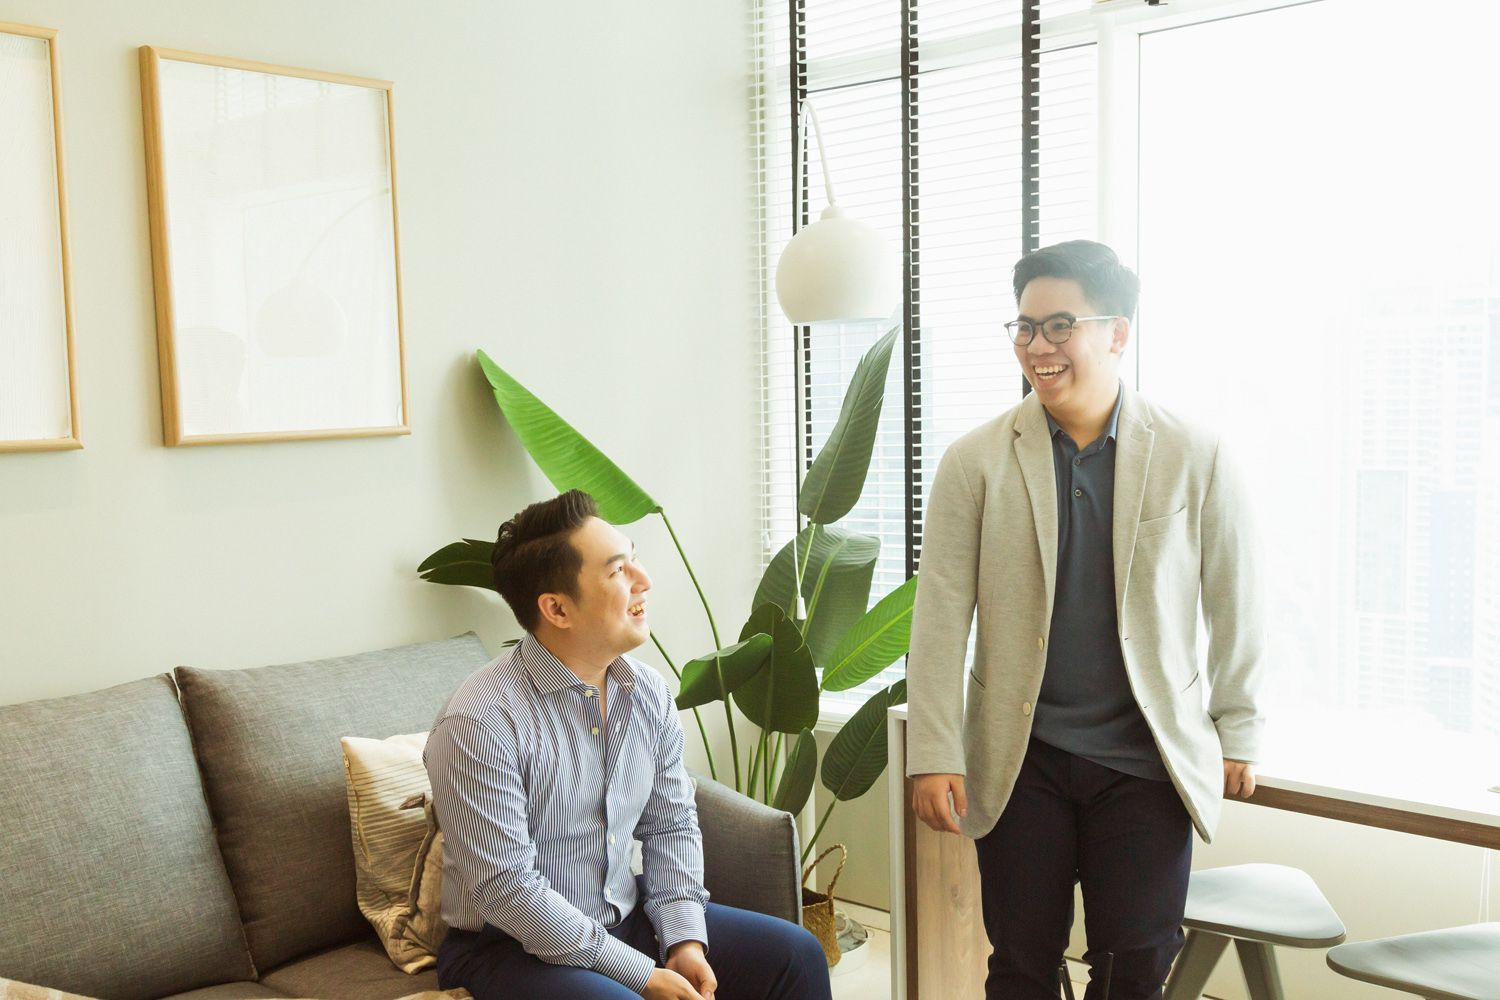 The Founders Of Hom Malaysia Take The Concept Of Co-Living In The City To The Next Level